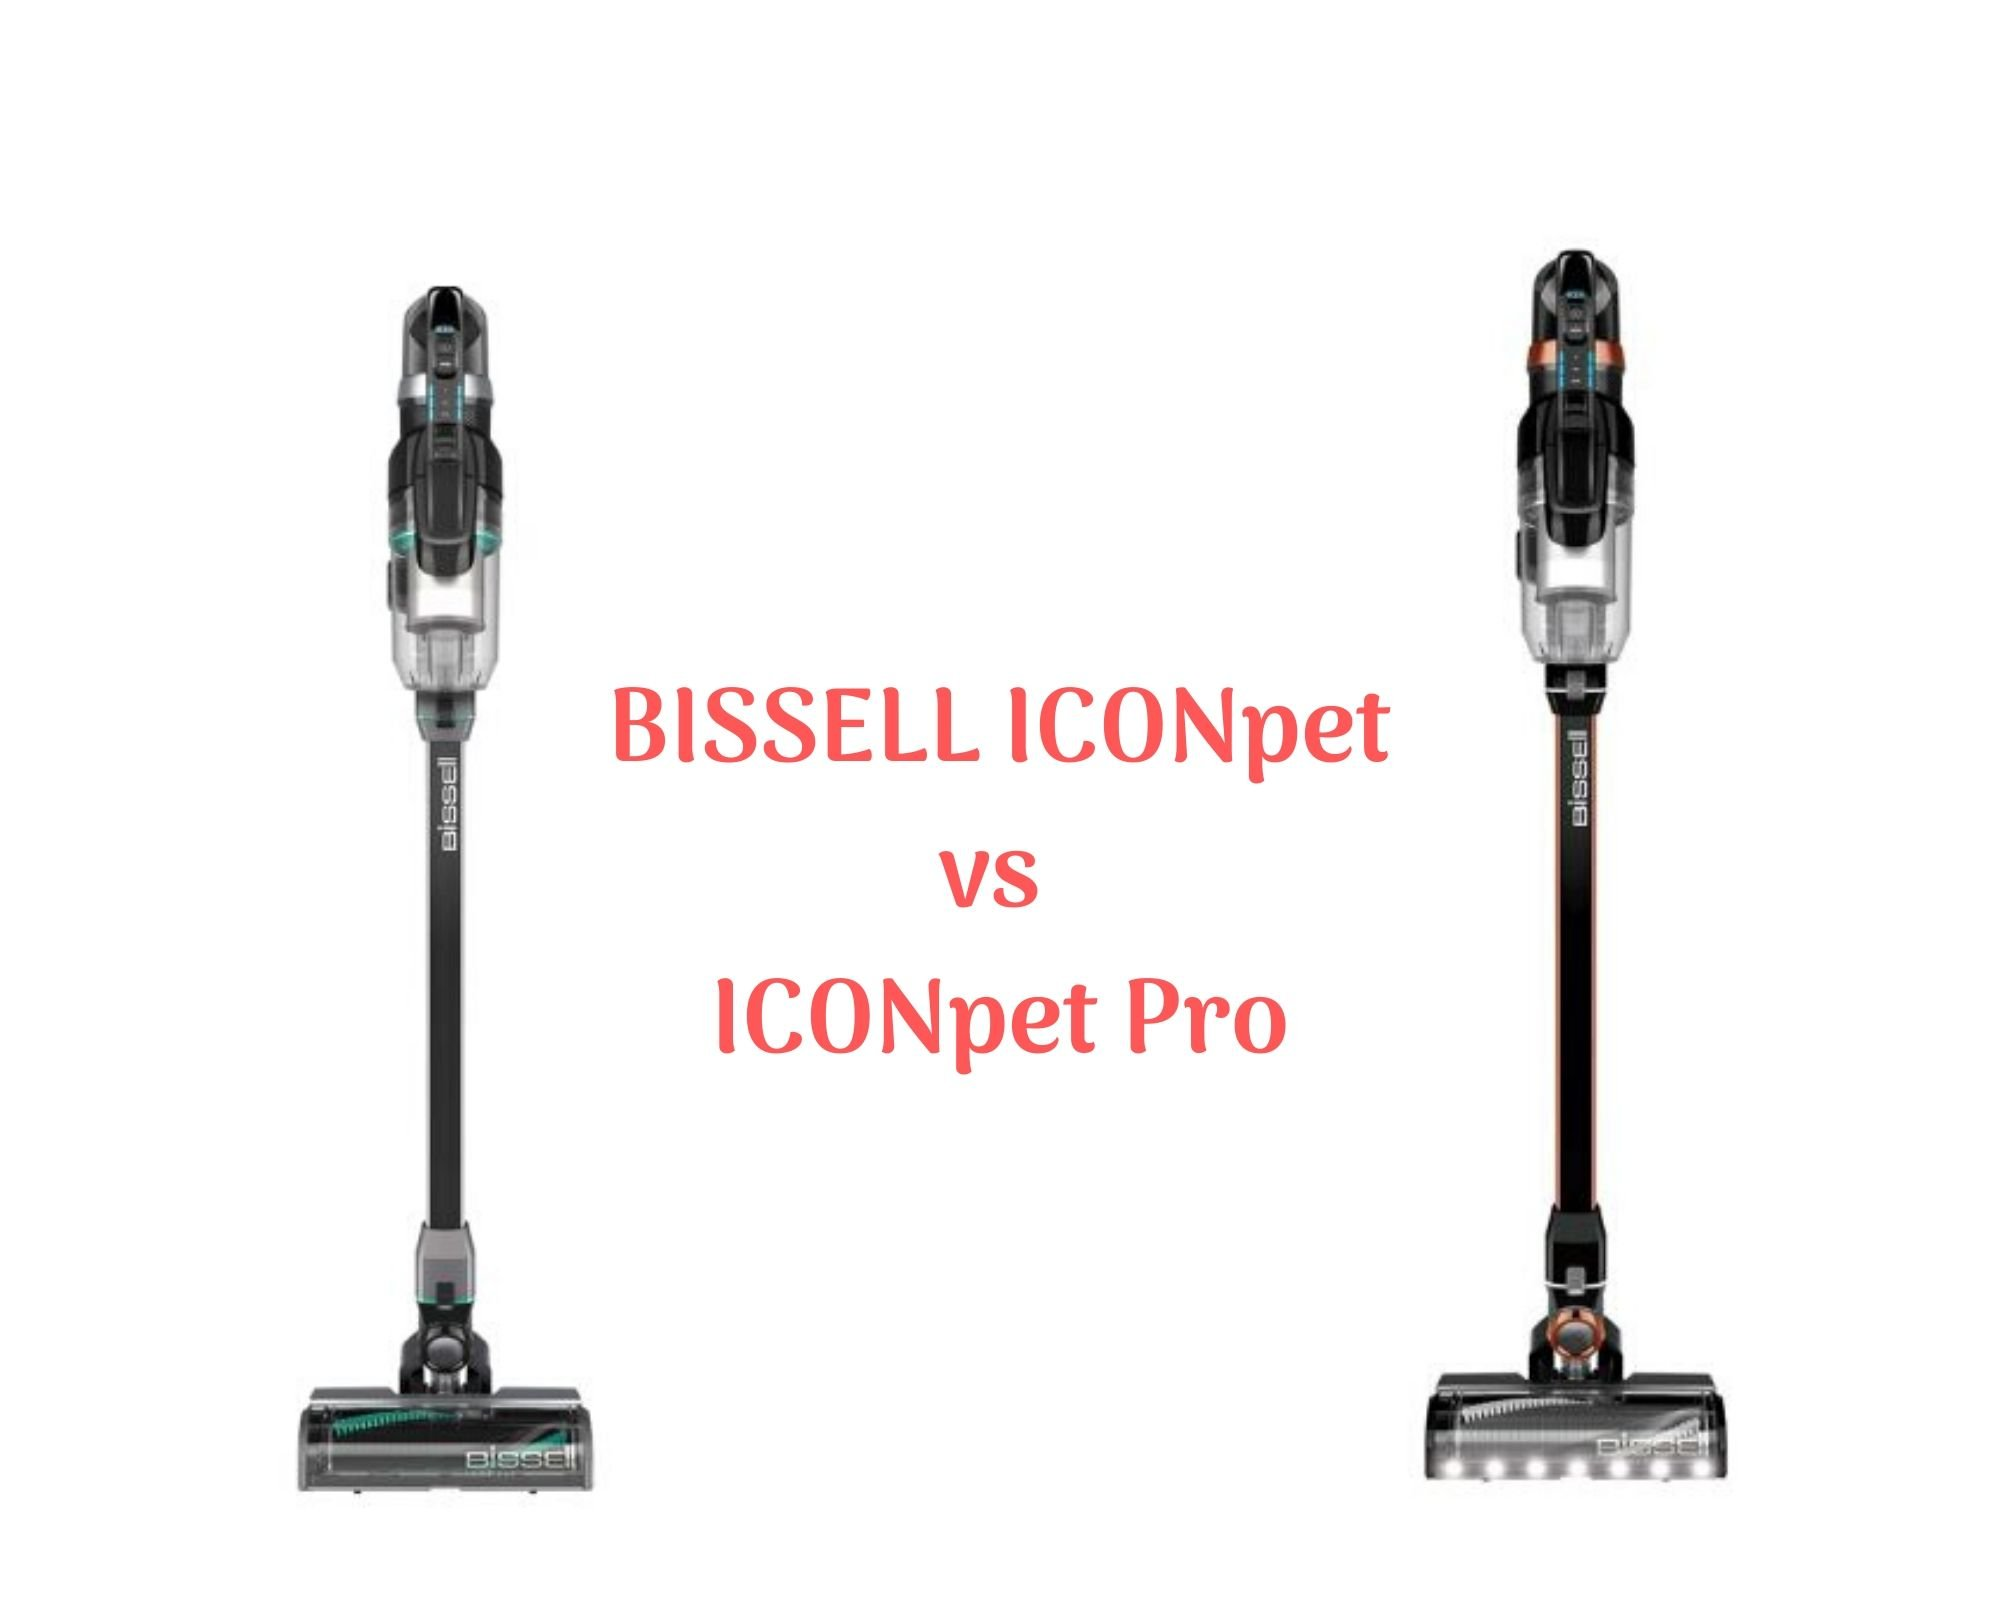 BISSELL ICONpet Review (ICONpet vs ICONpet Pro)